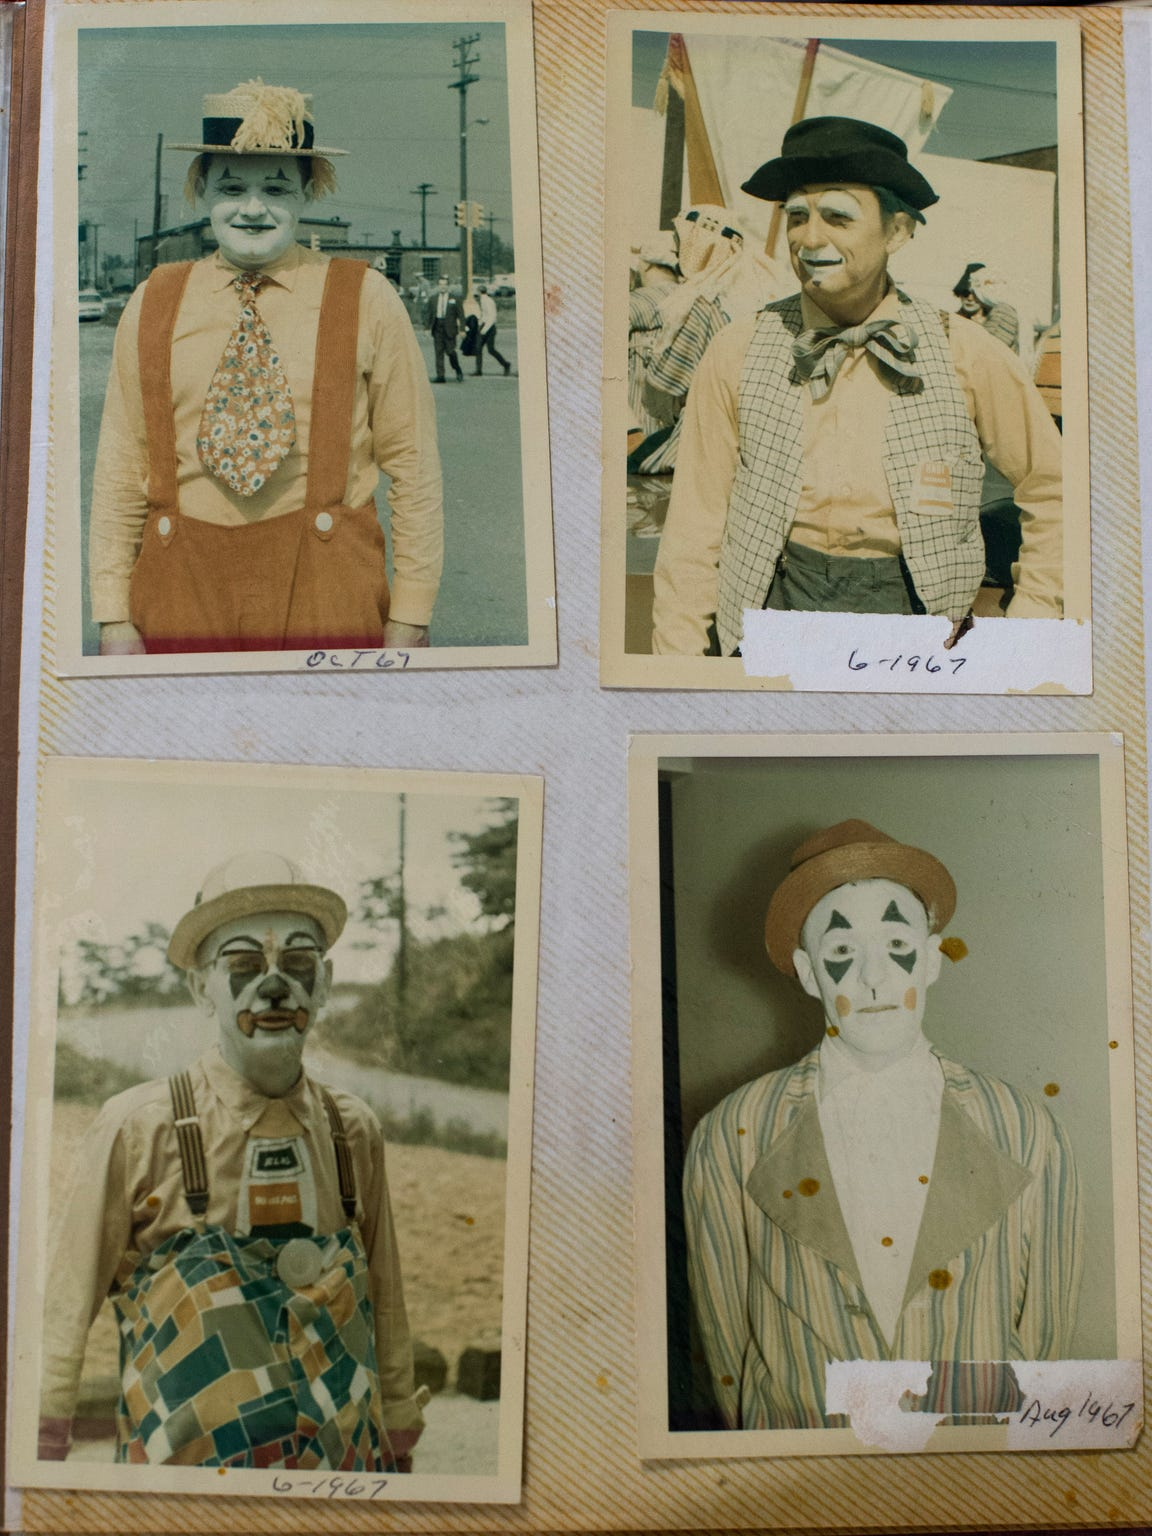 Photographs of Hadi Shrine Funsters from 1967 are seen